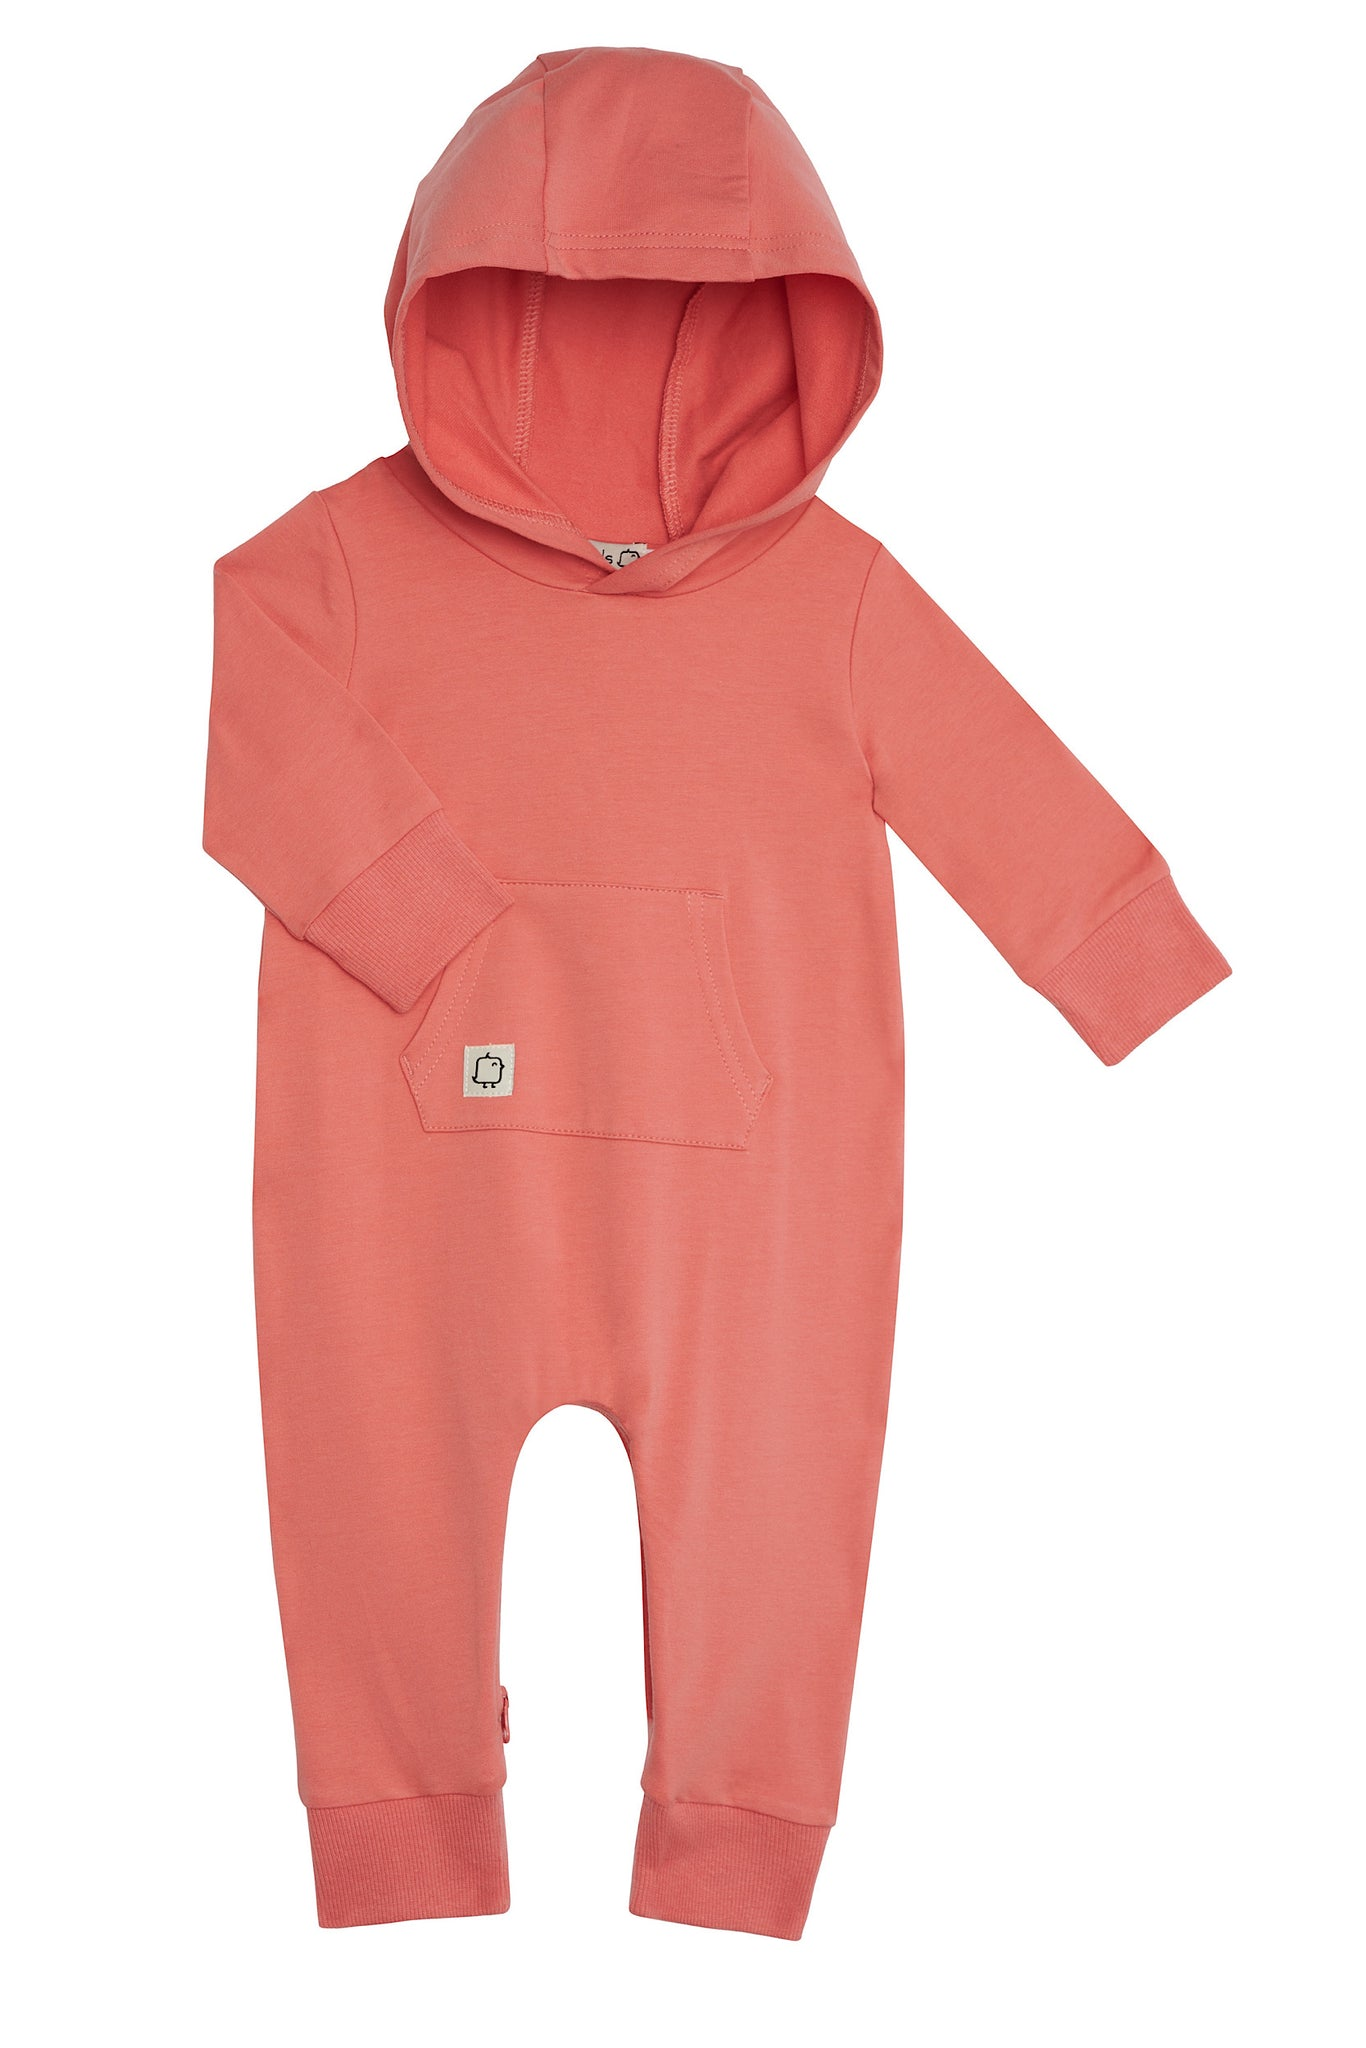 HuRo Kids Leg to Leg Zipper Rompers